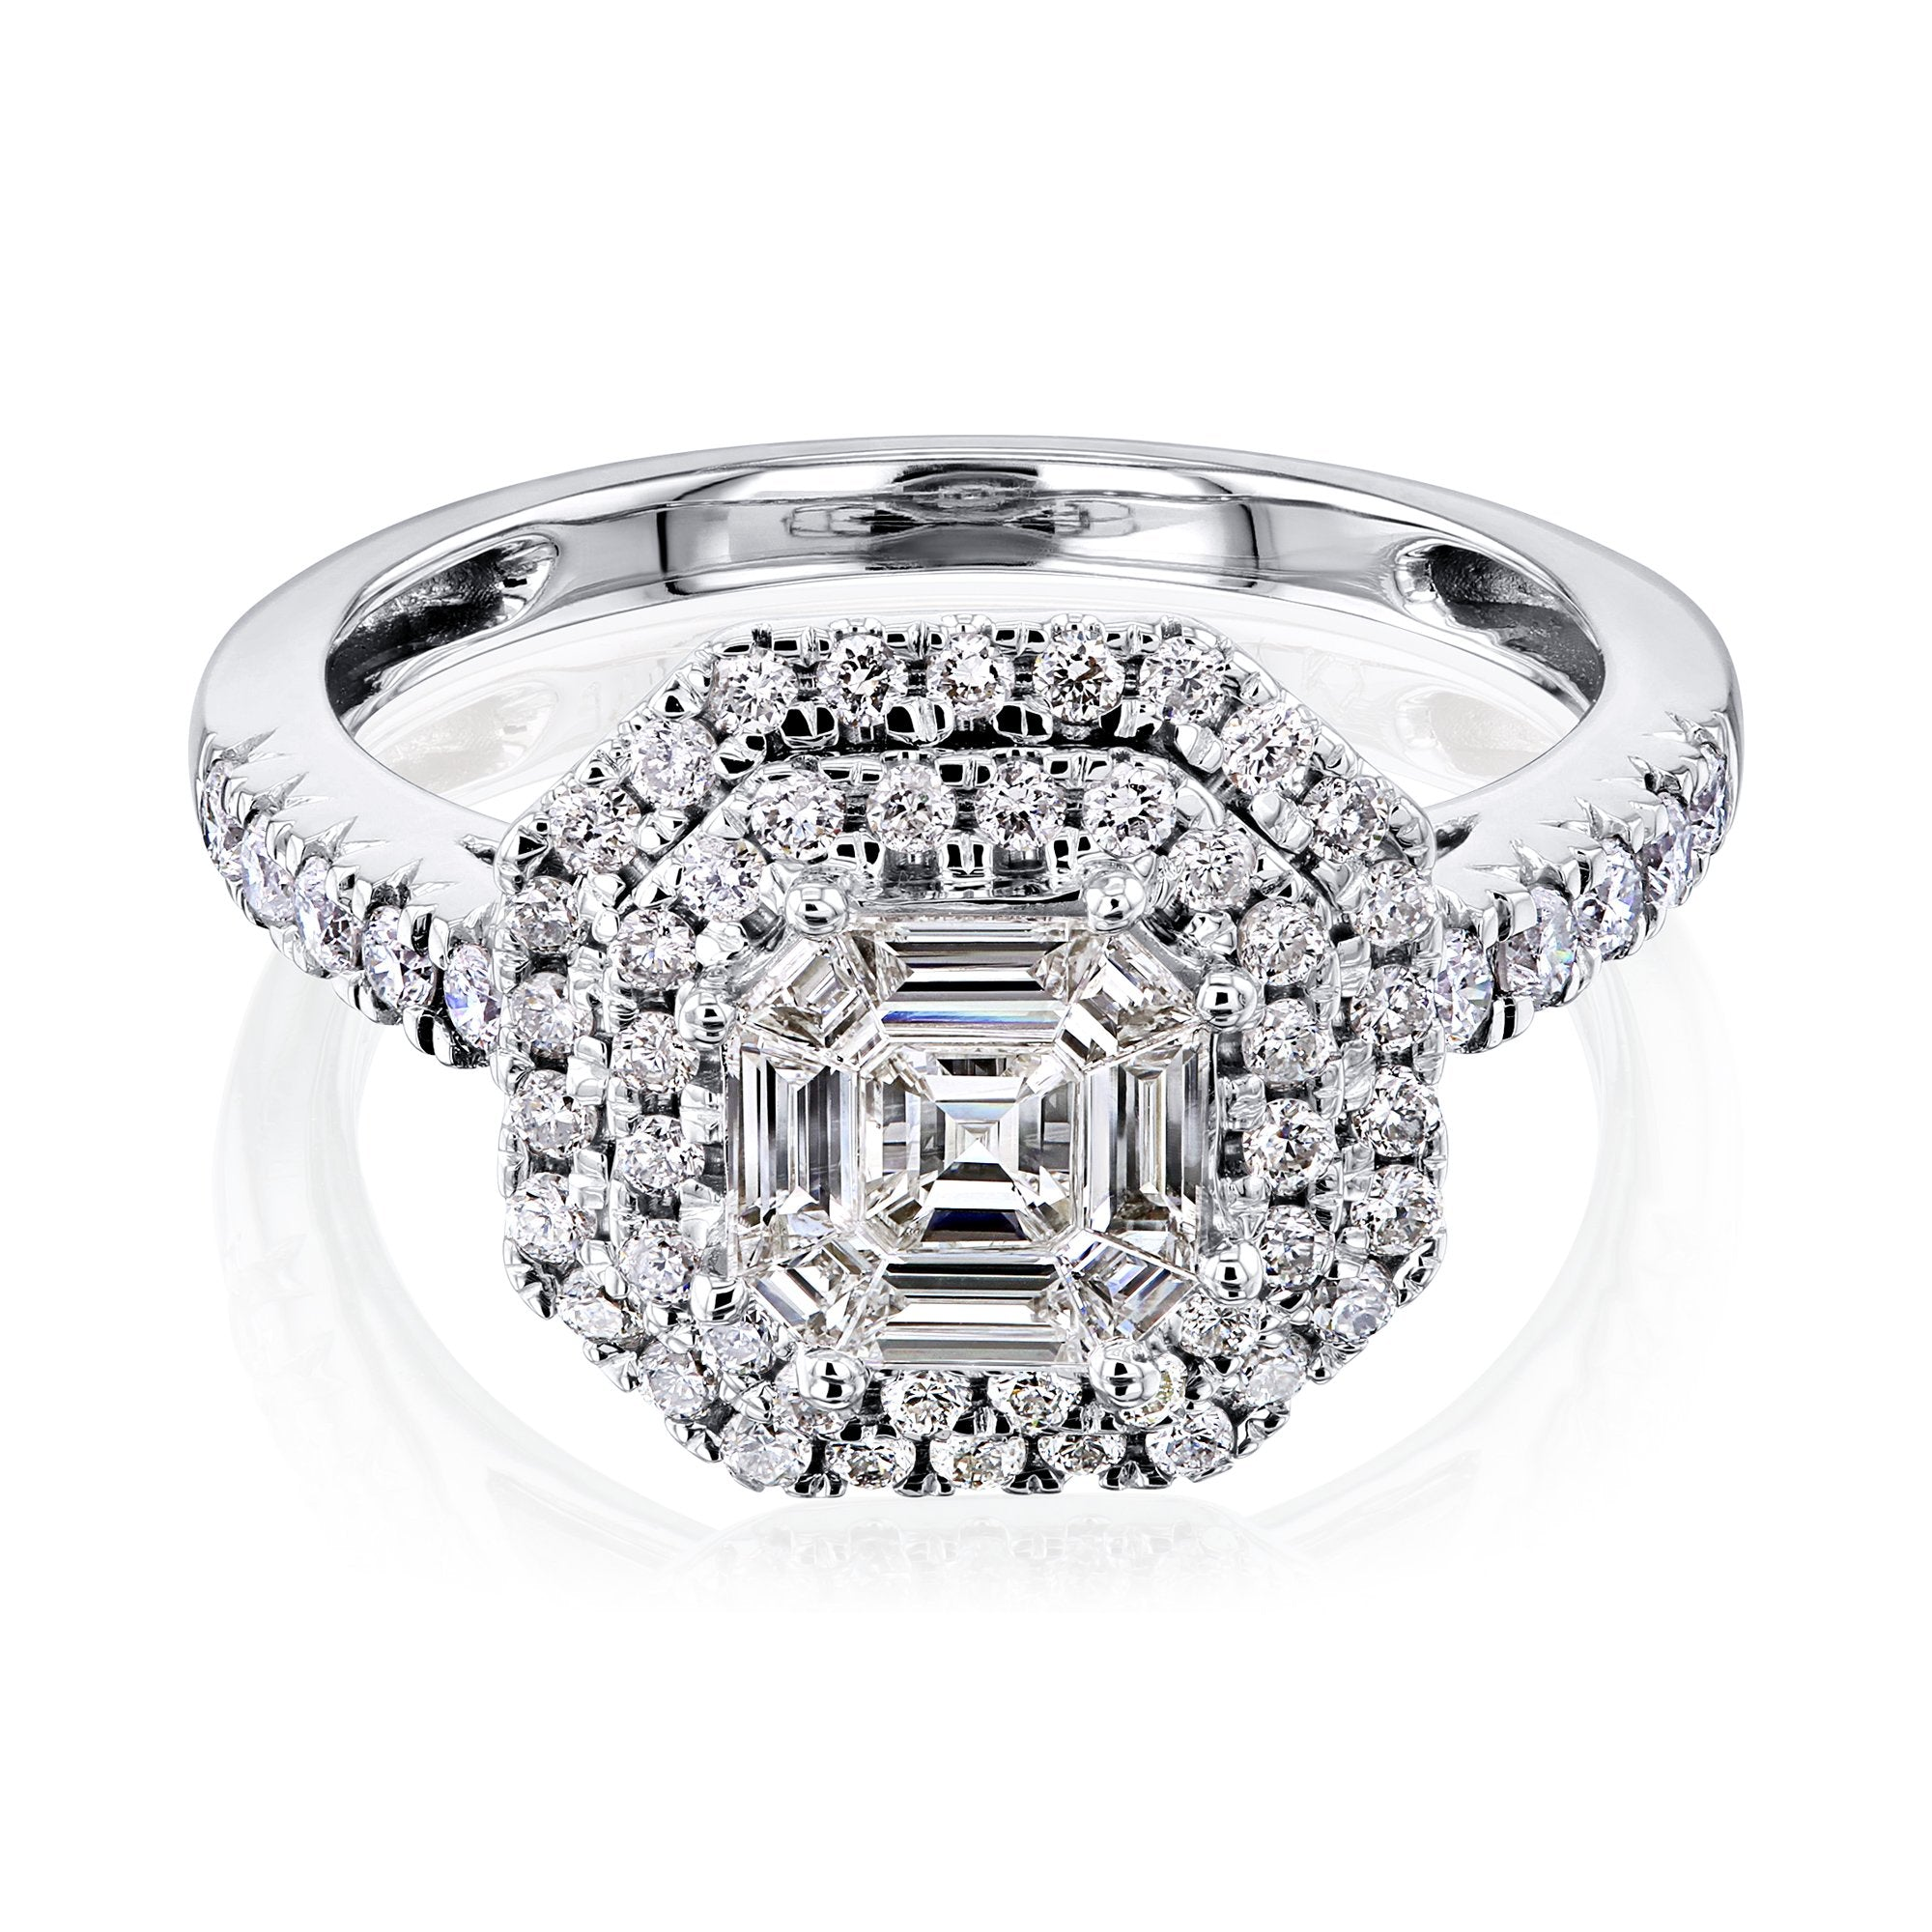 Top Double Halo Cluster Ring - 4.0 white-gold